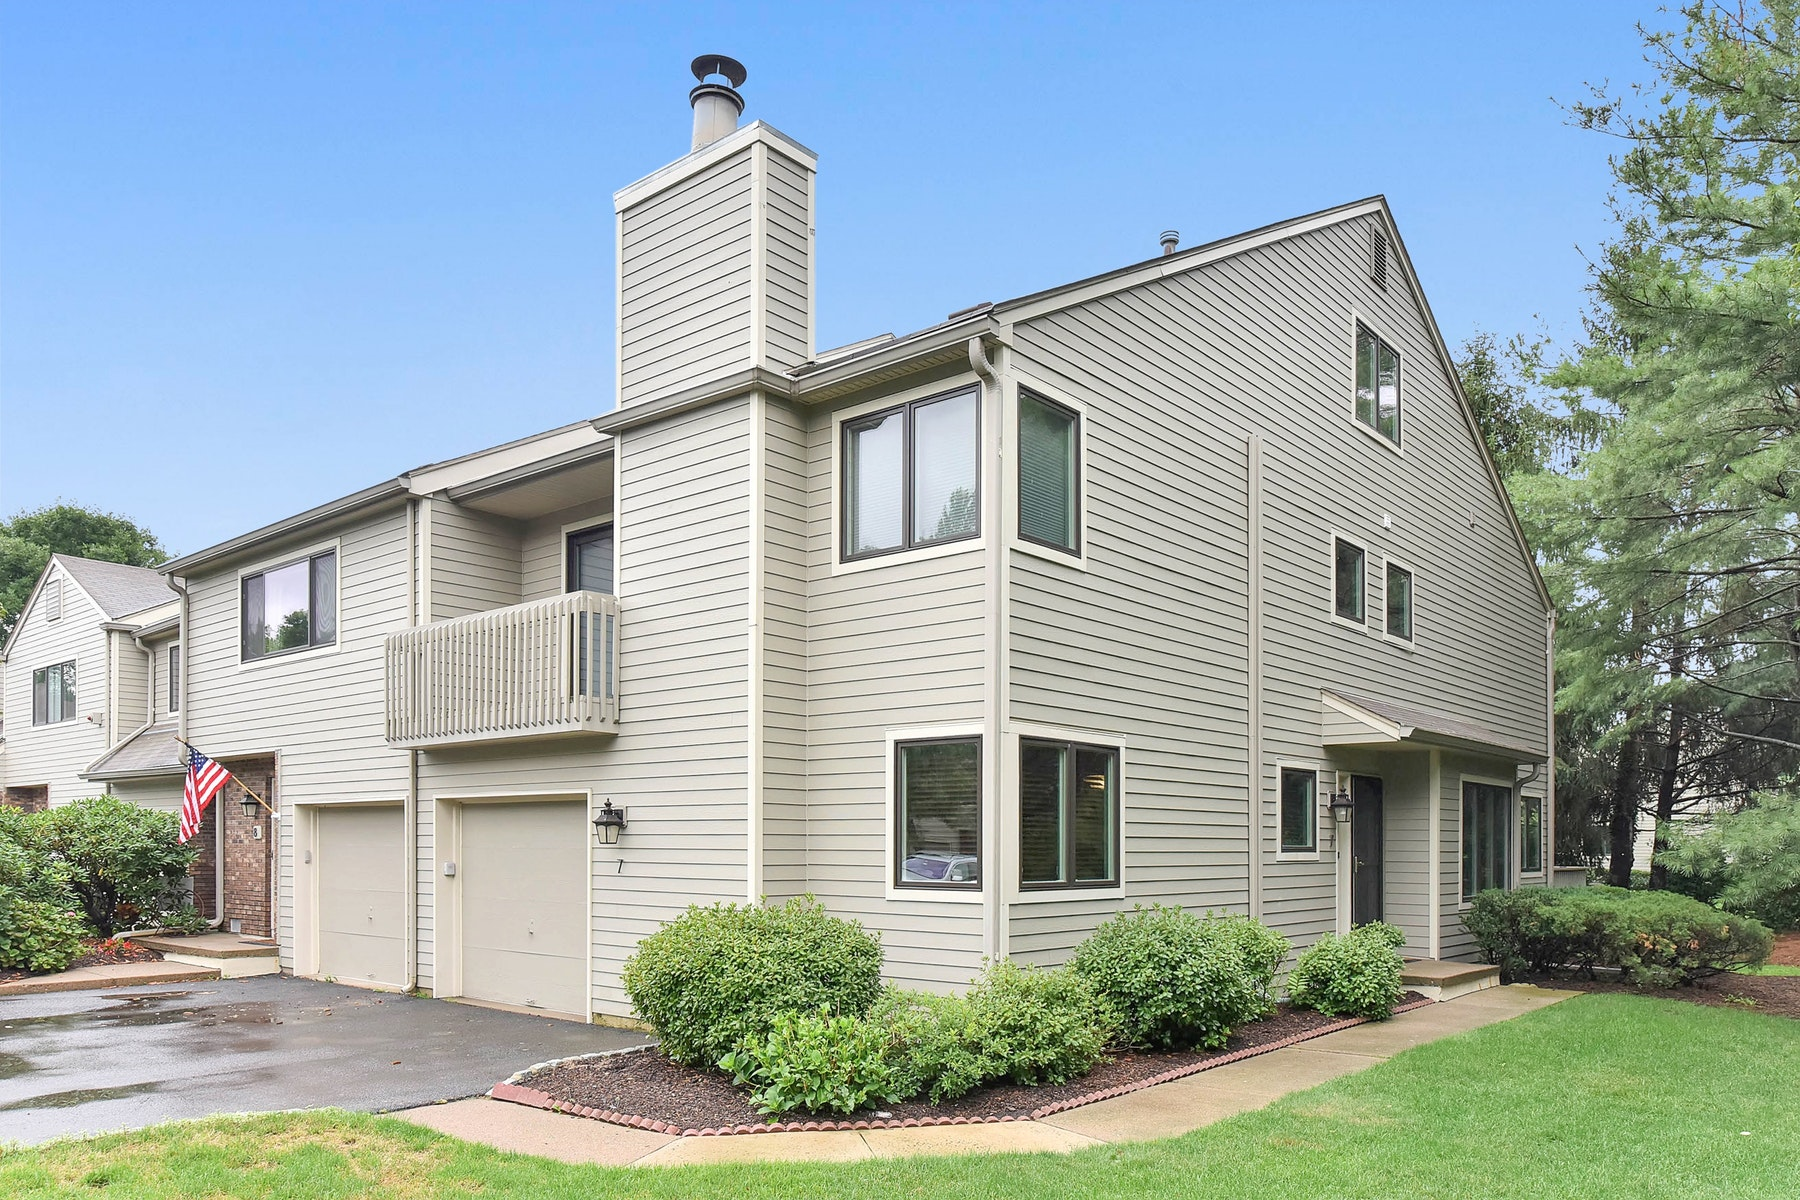 Townhouse for Sale at Spruce Run In The Heart Of Ramsey, End Unit, Now Available. 7 Spruce Run Ramsey, New Jersey 07446 United States